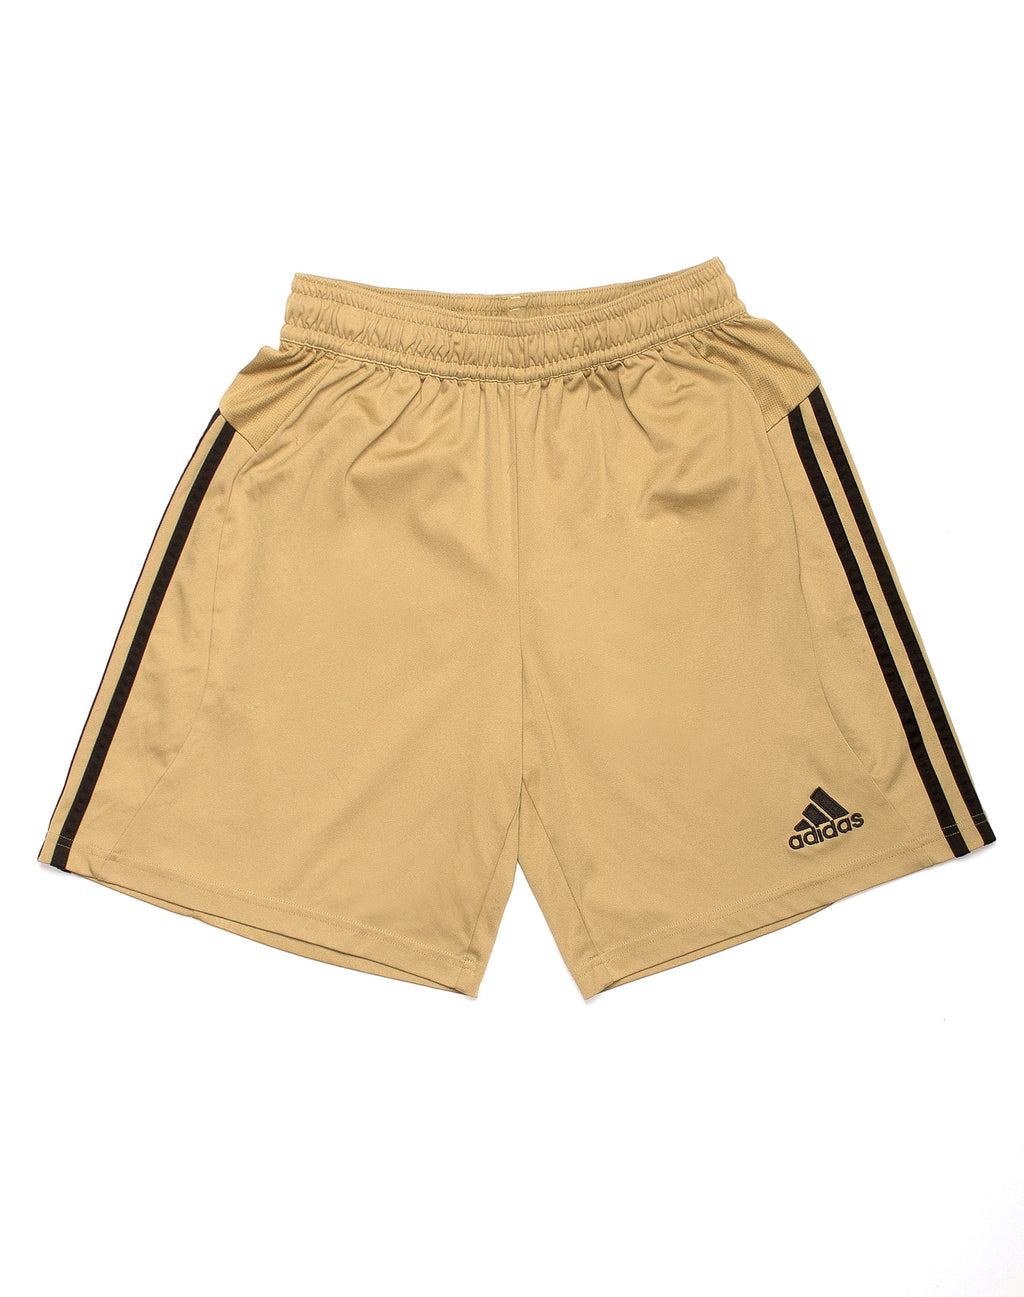 ADIDAS GOLD BASKETBALL SHORTS